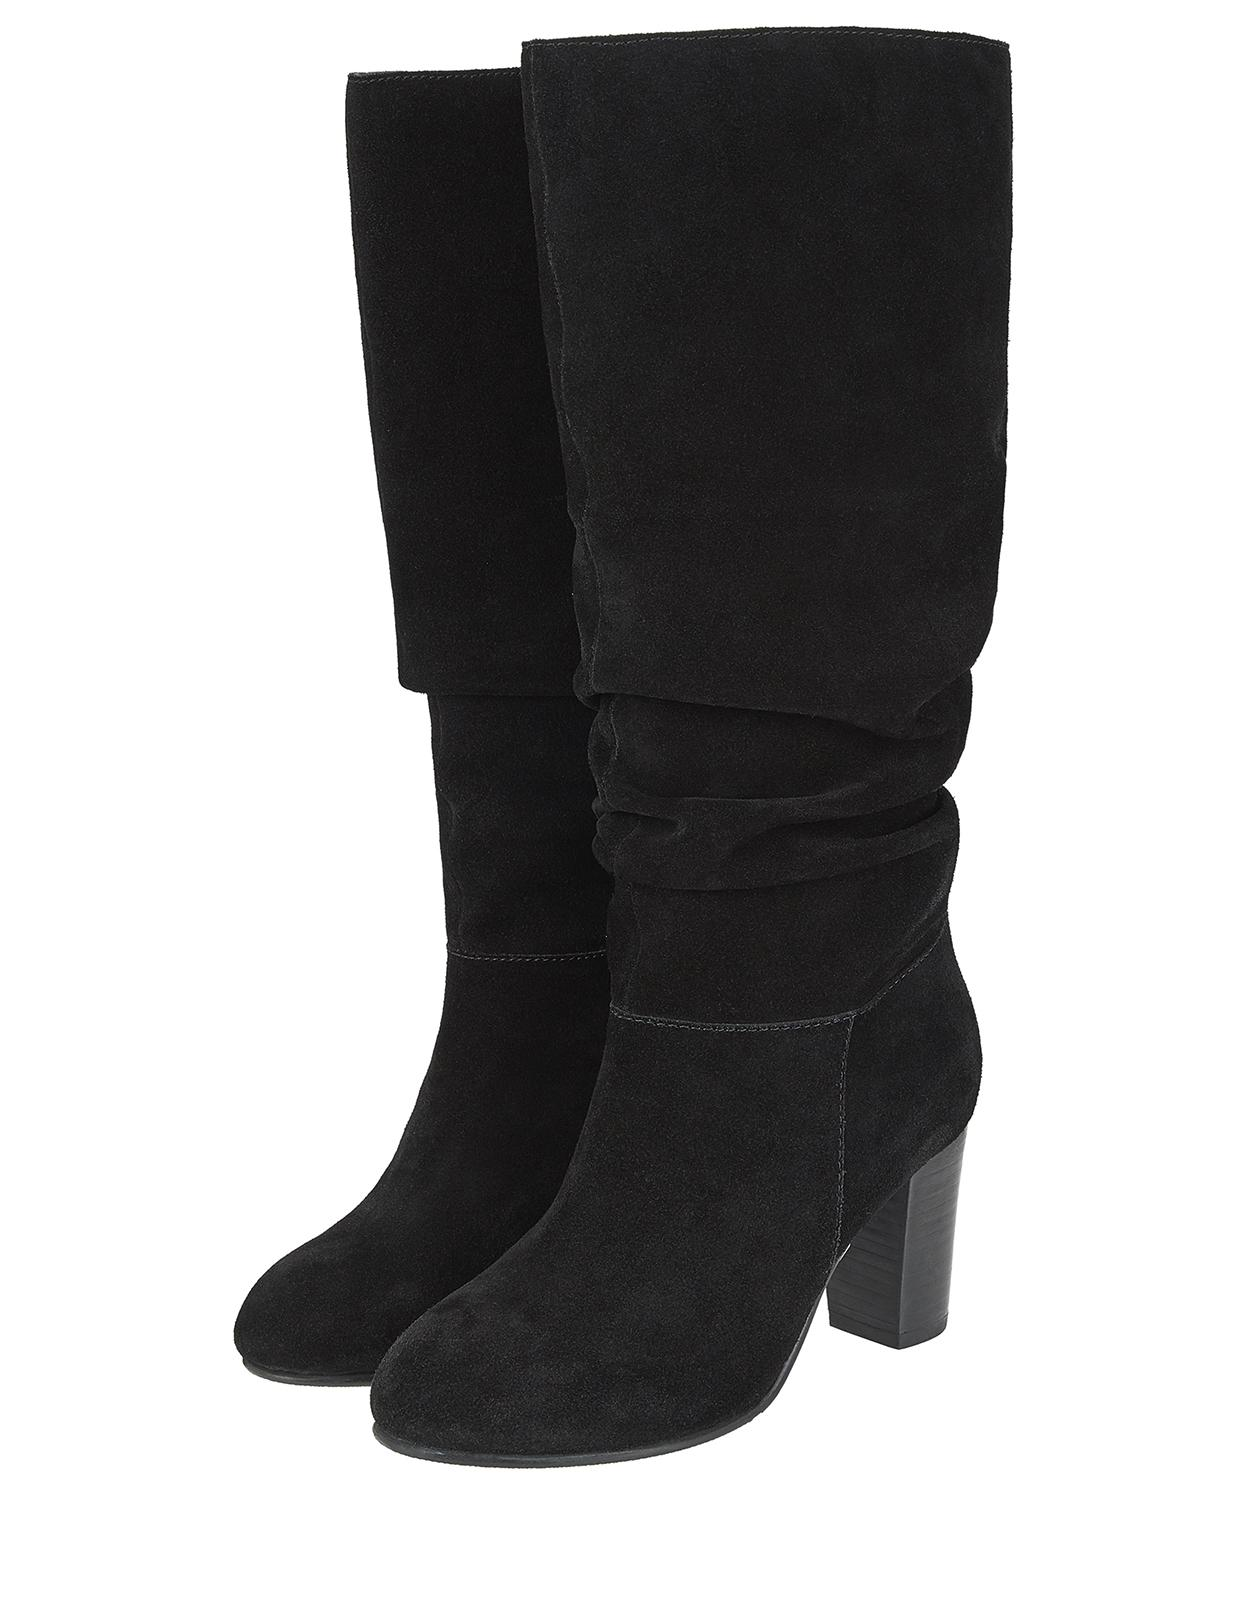 14c7be7ce013 Monsoon Sadie Suede Slouch Boots in Black - Lyst